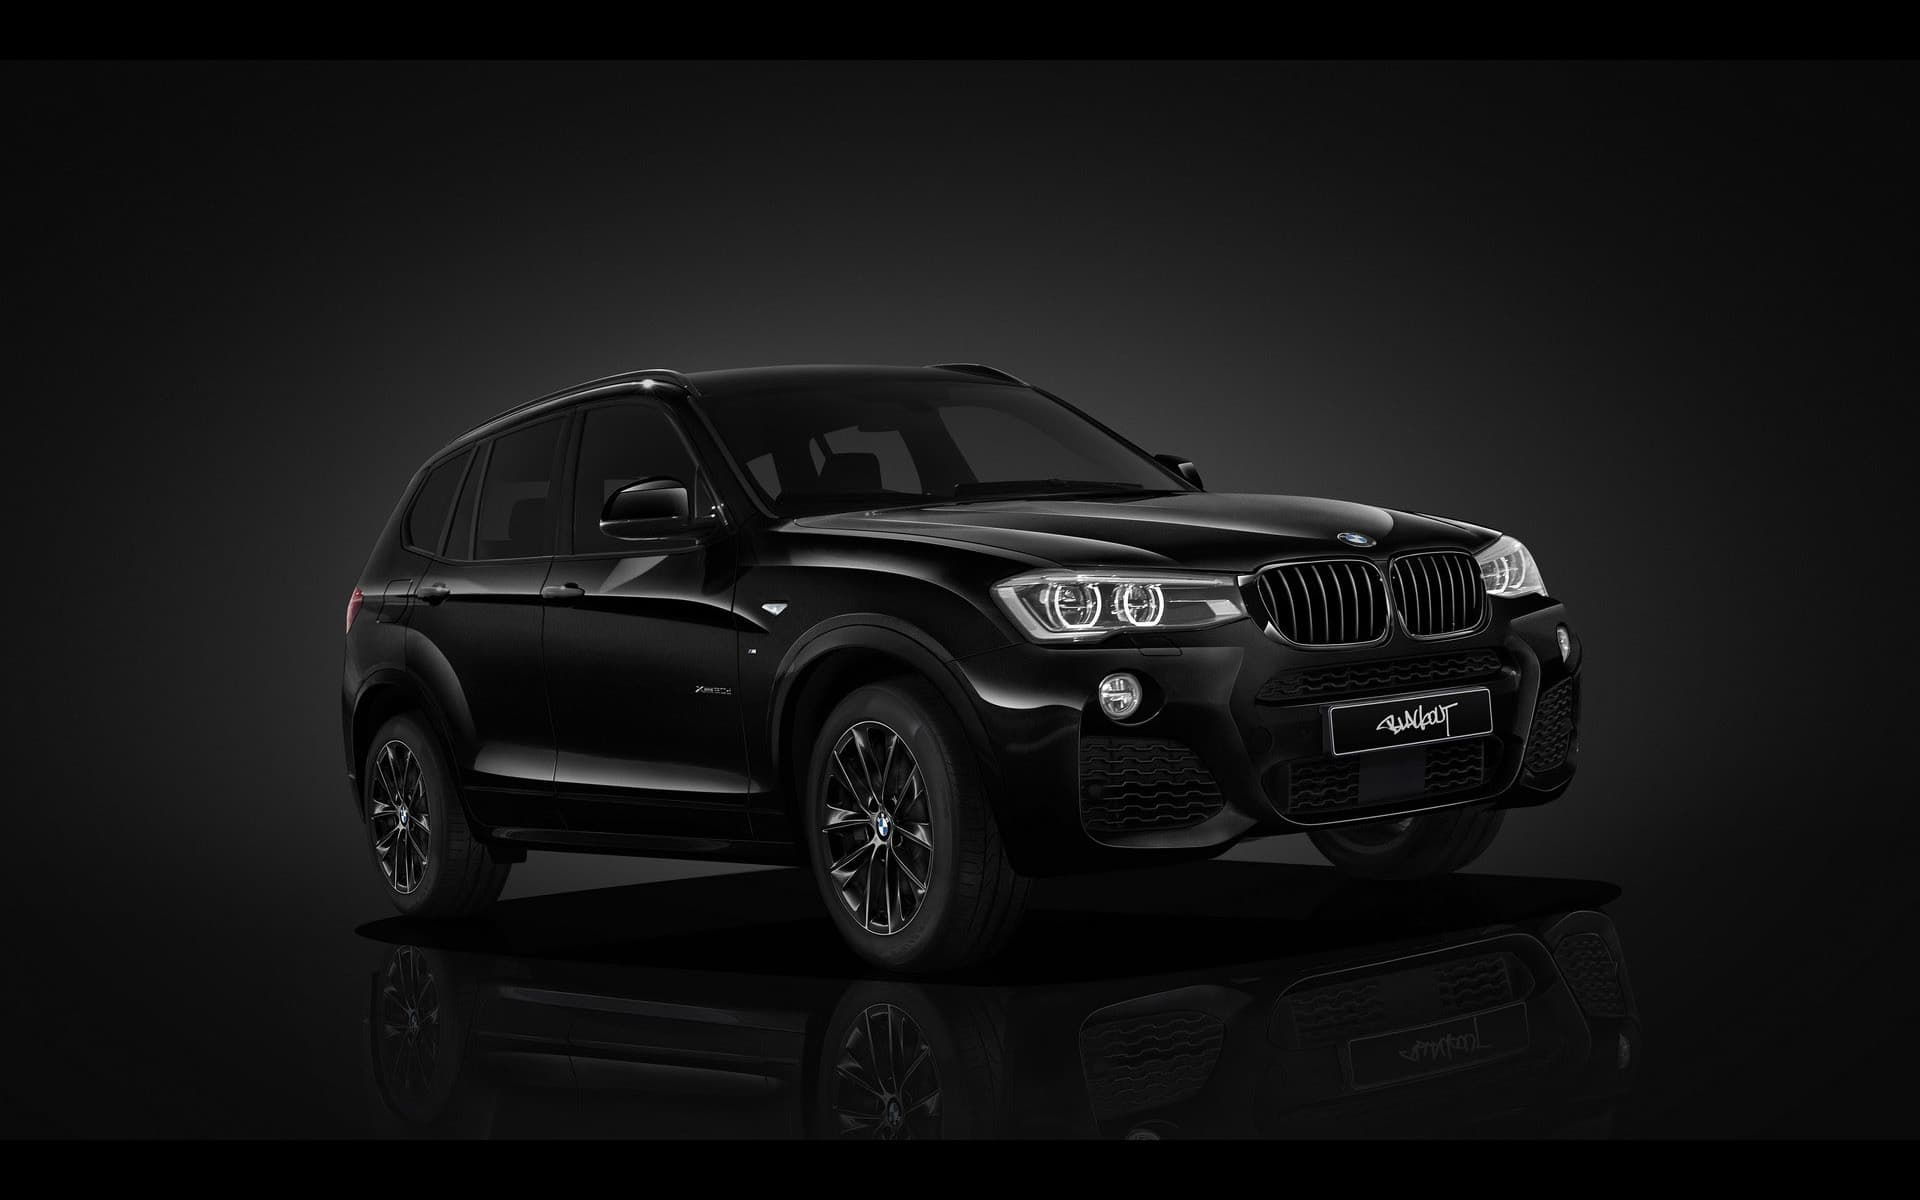 Bmw X3 2017 Wallpapers Hd Black White Silver